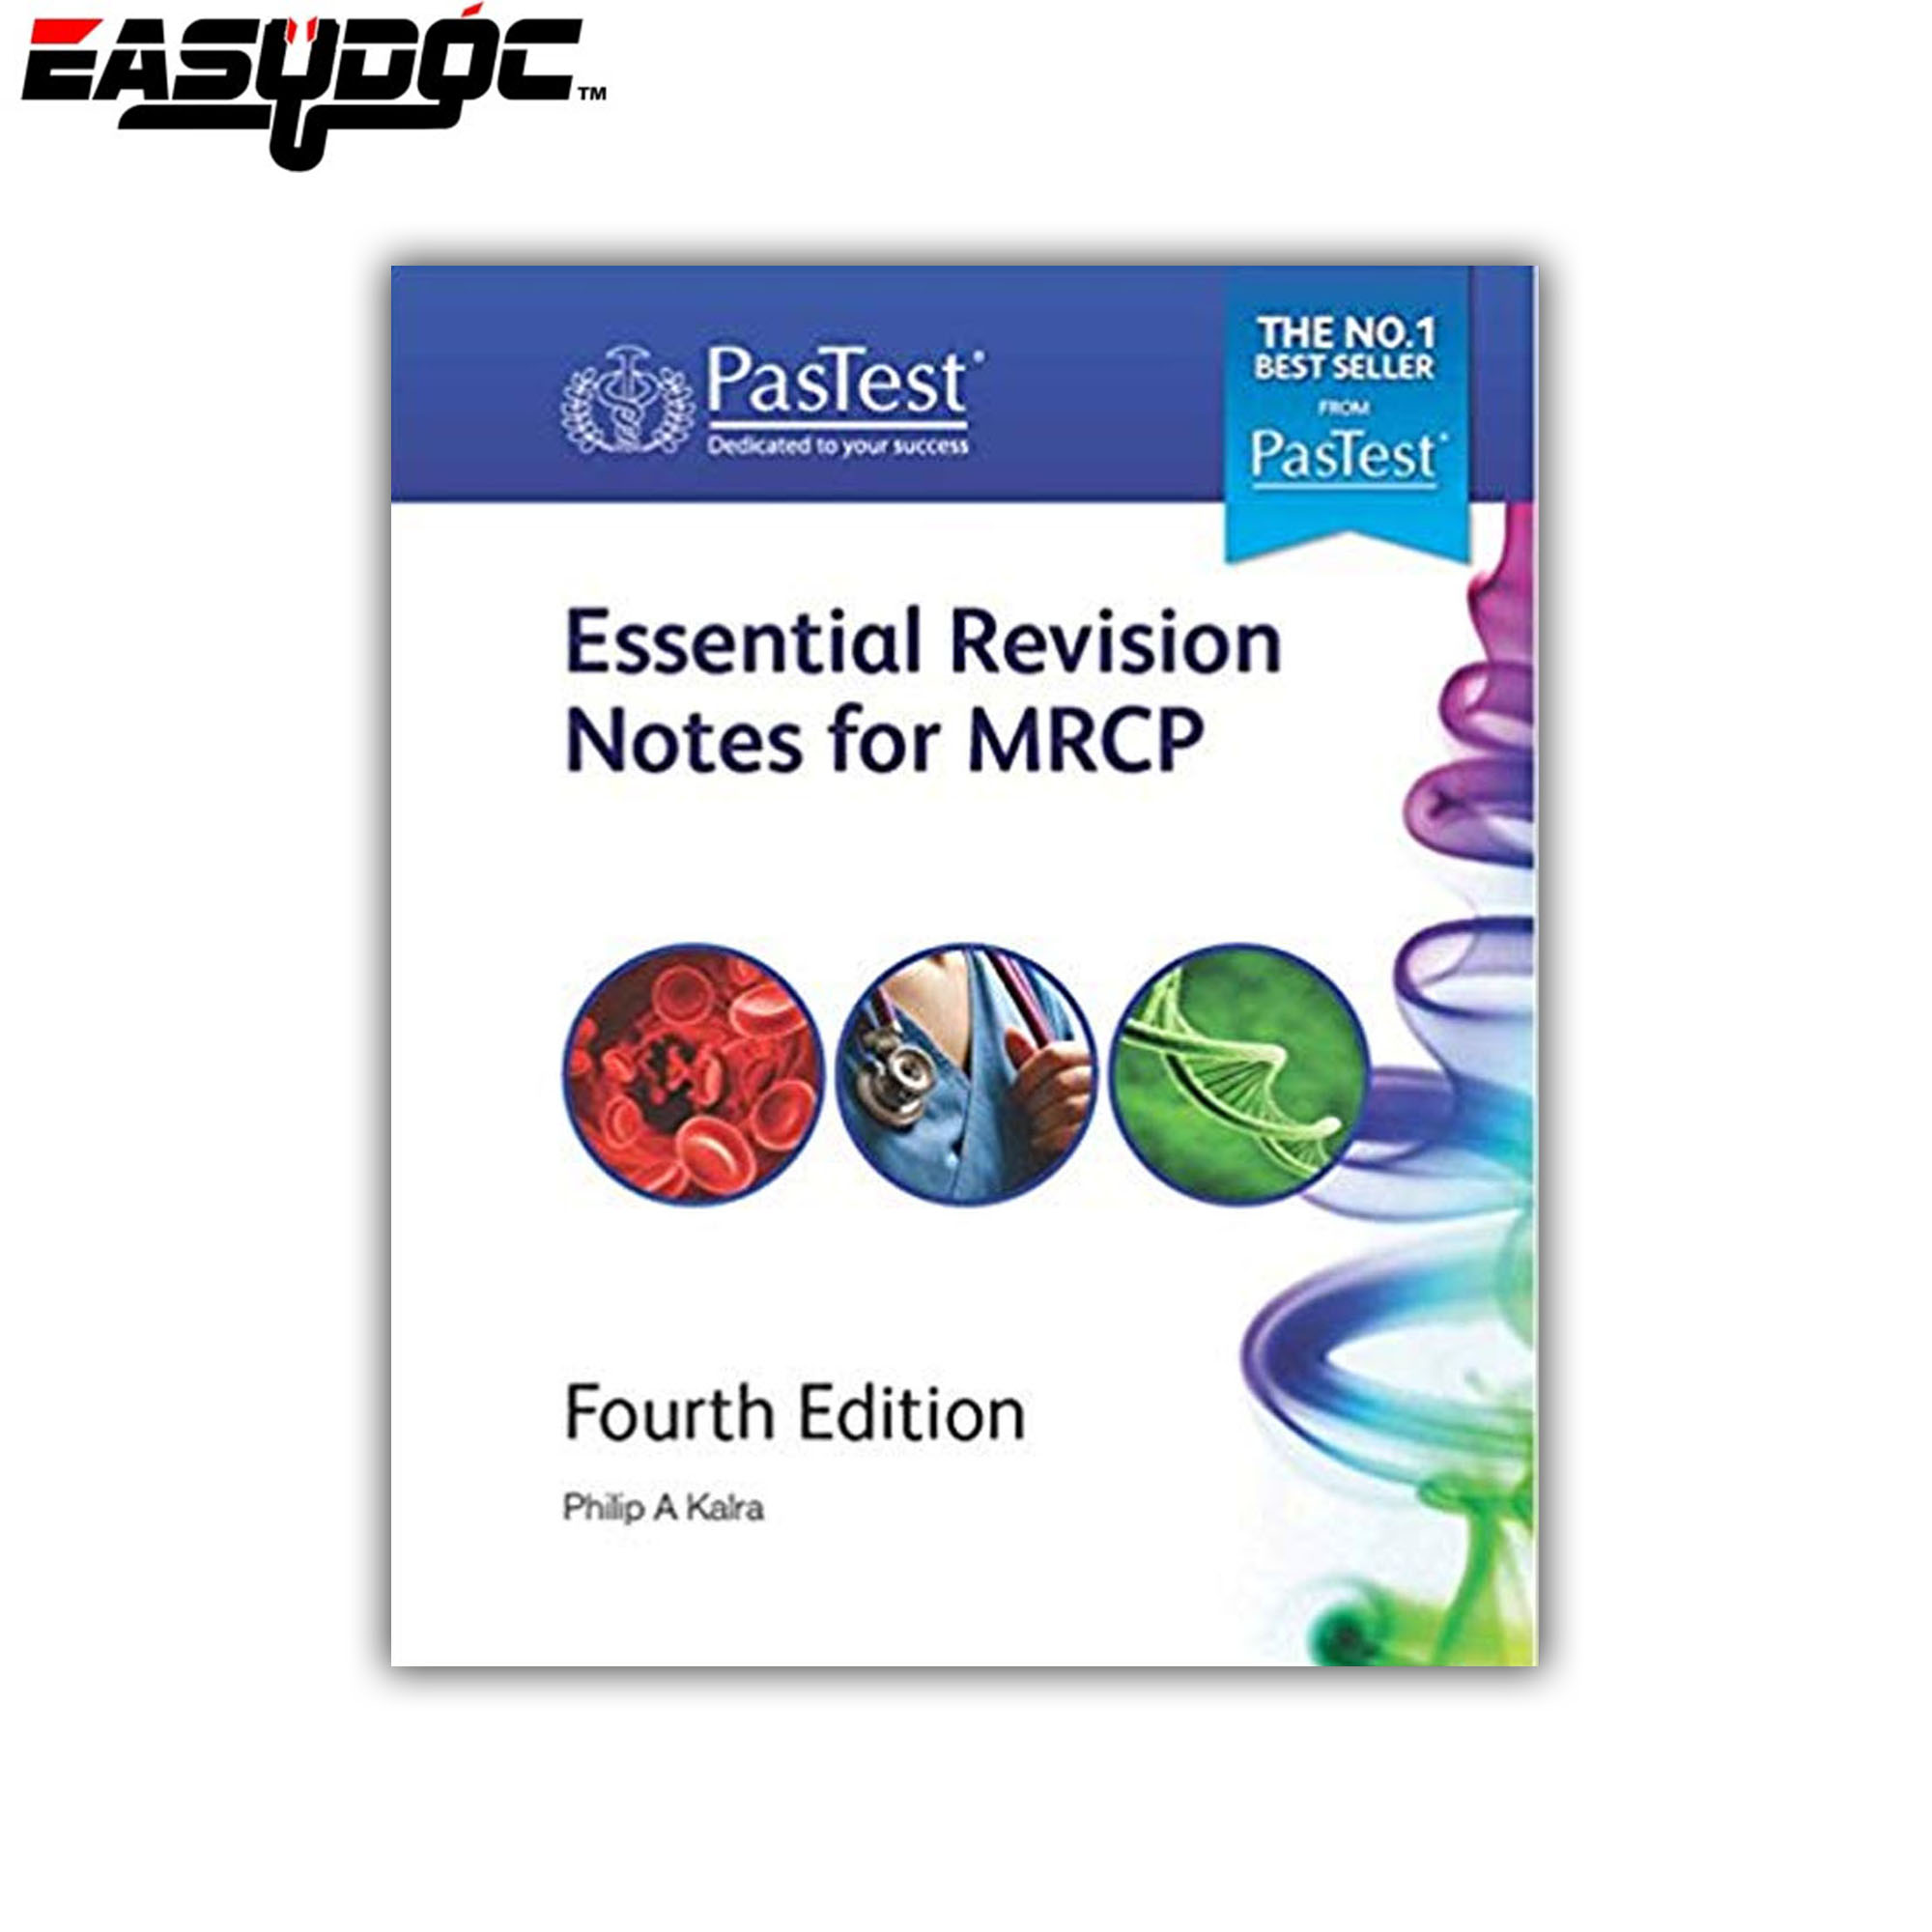 Essential Revision Notes for MRCP, Fourth Edition - EASYDOC MEDBOOKS